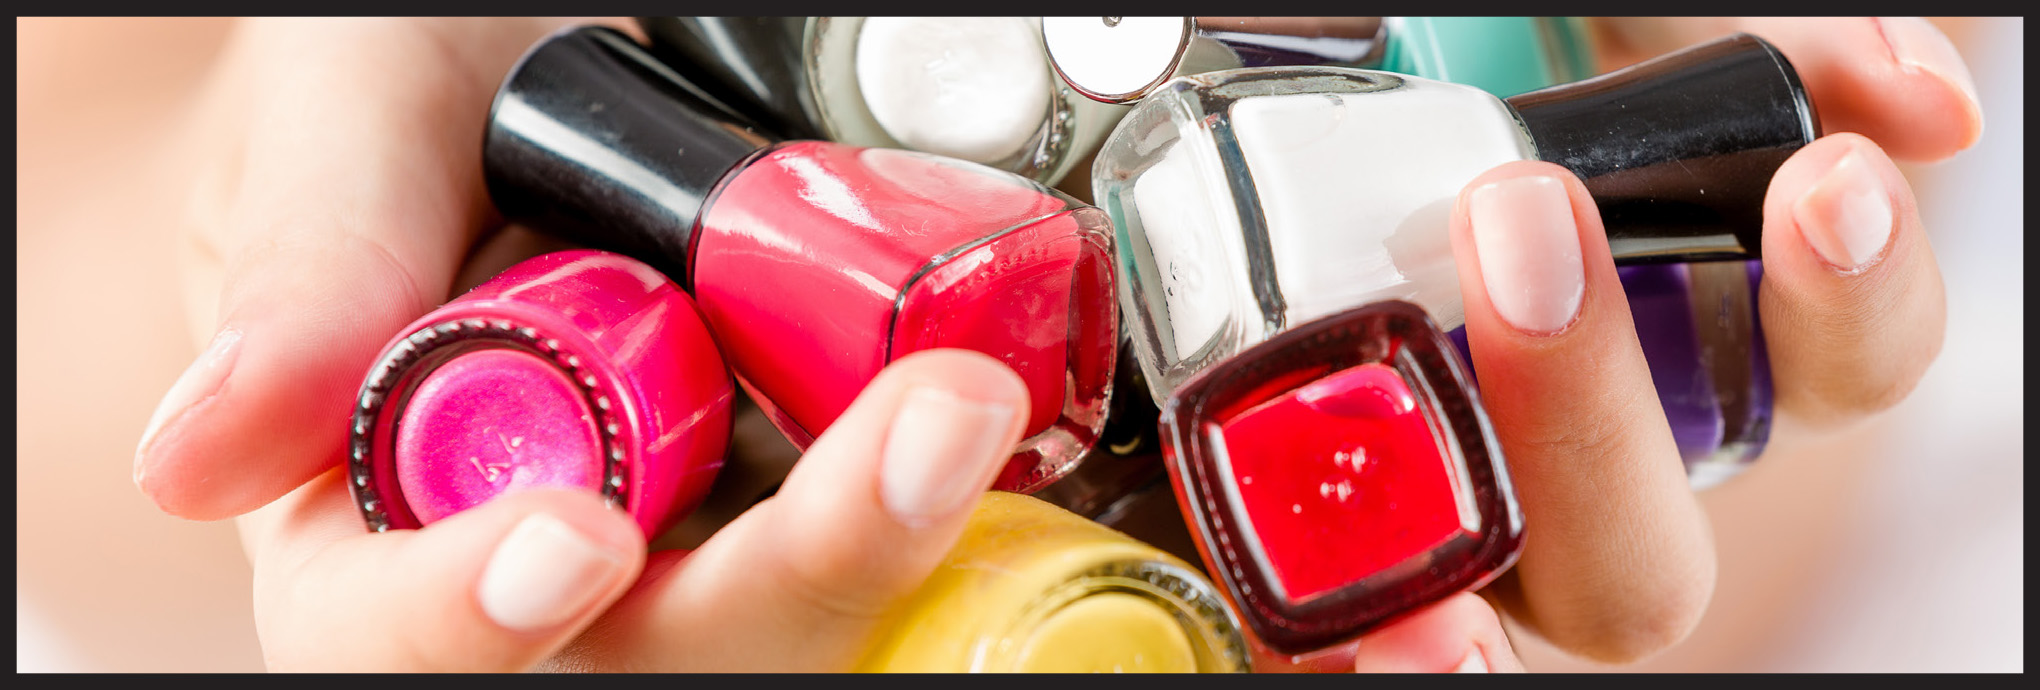 Nail-Color-and-Beauty-Industry-Trends